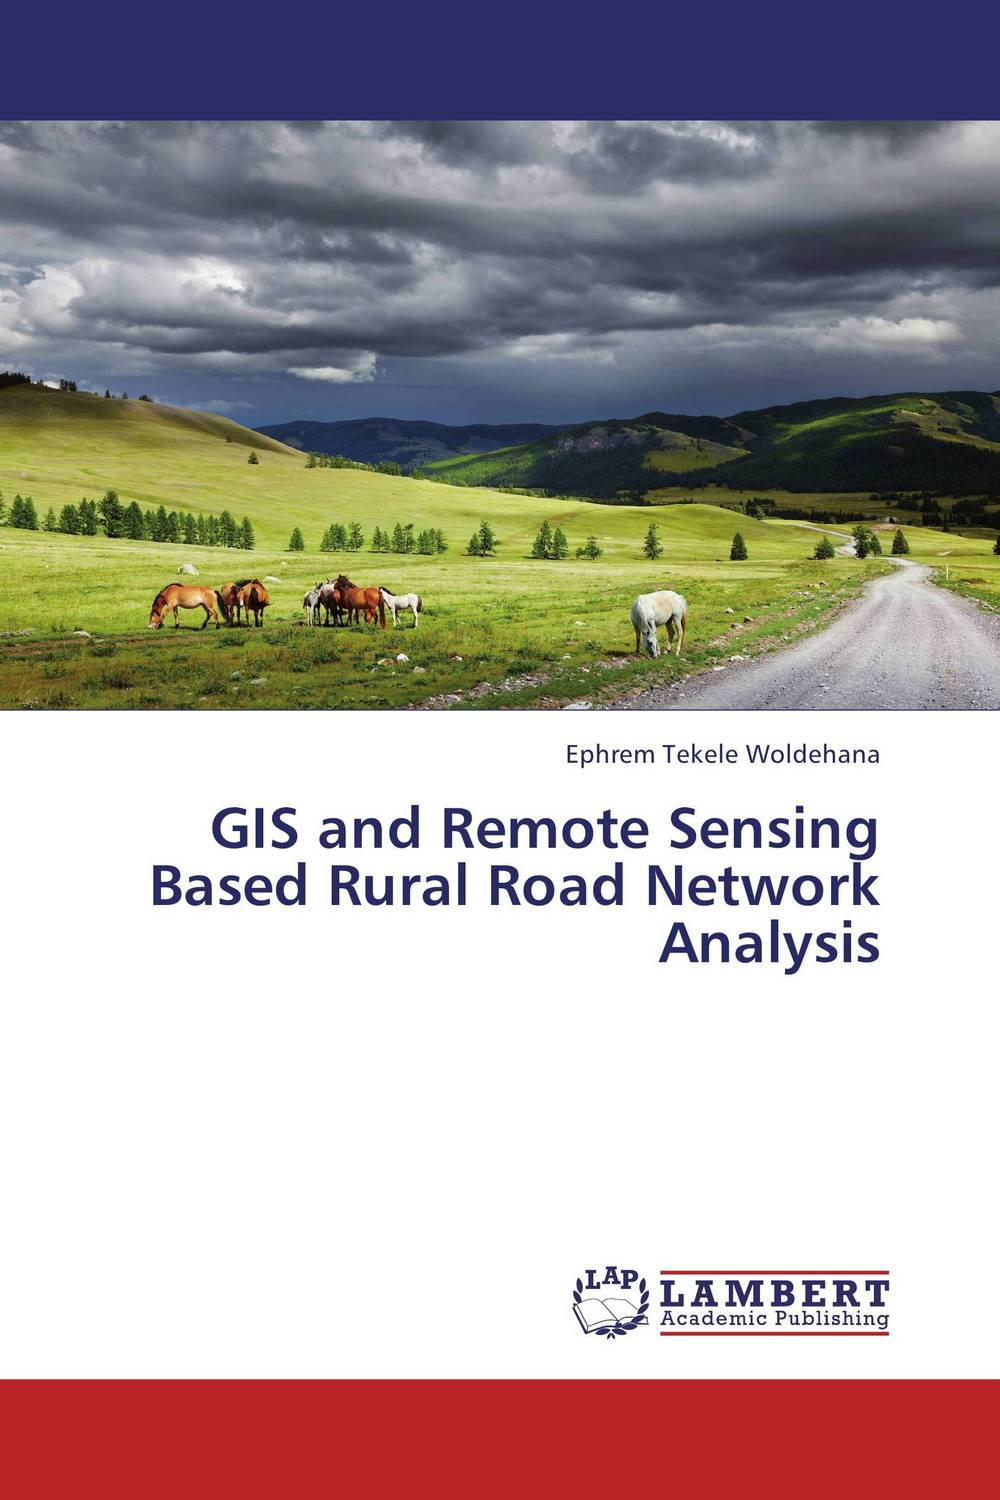 Фото GIS and Remote Sensing Based Rural Road Network Analysis cervical cancer in amhara region in ethiopia